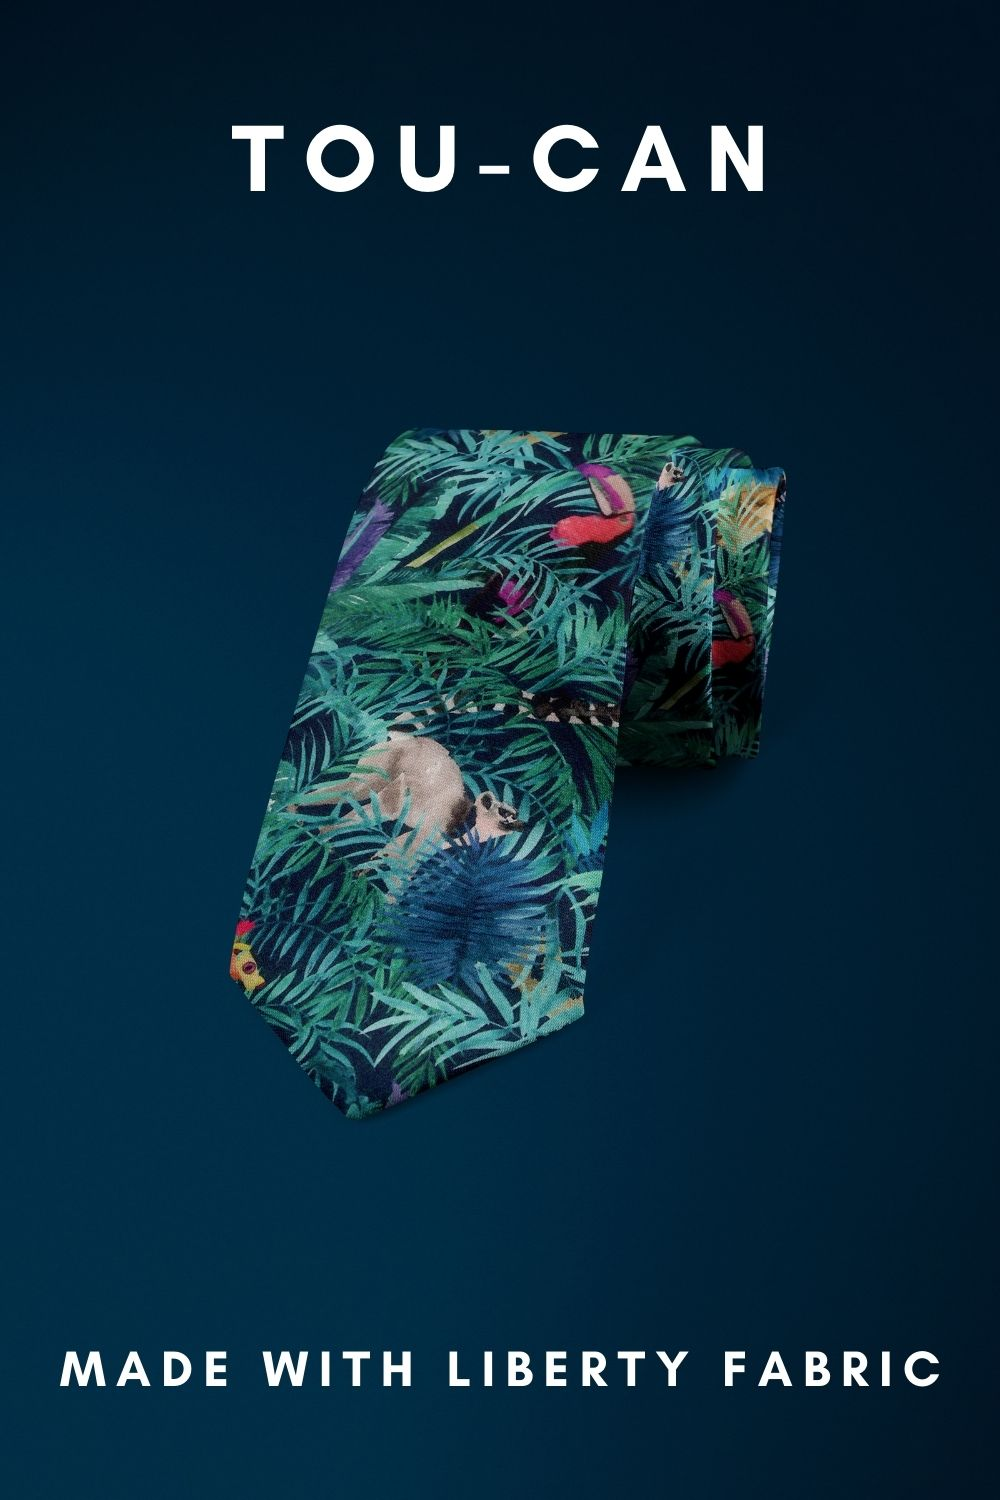 Tou-Can Liberty of London cotton fabric floral tie